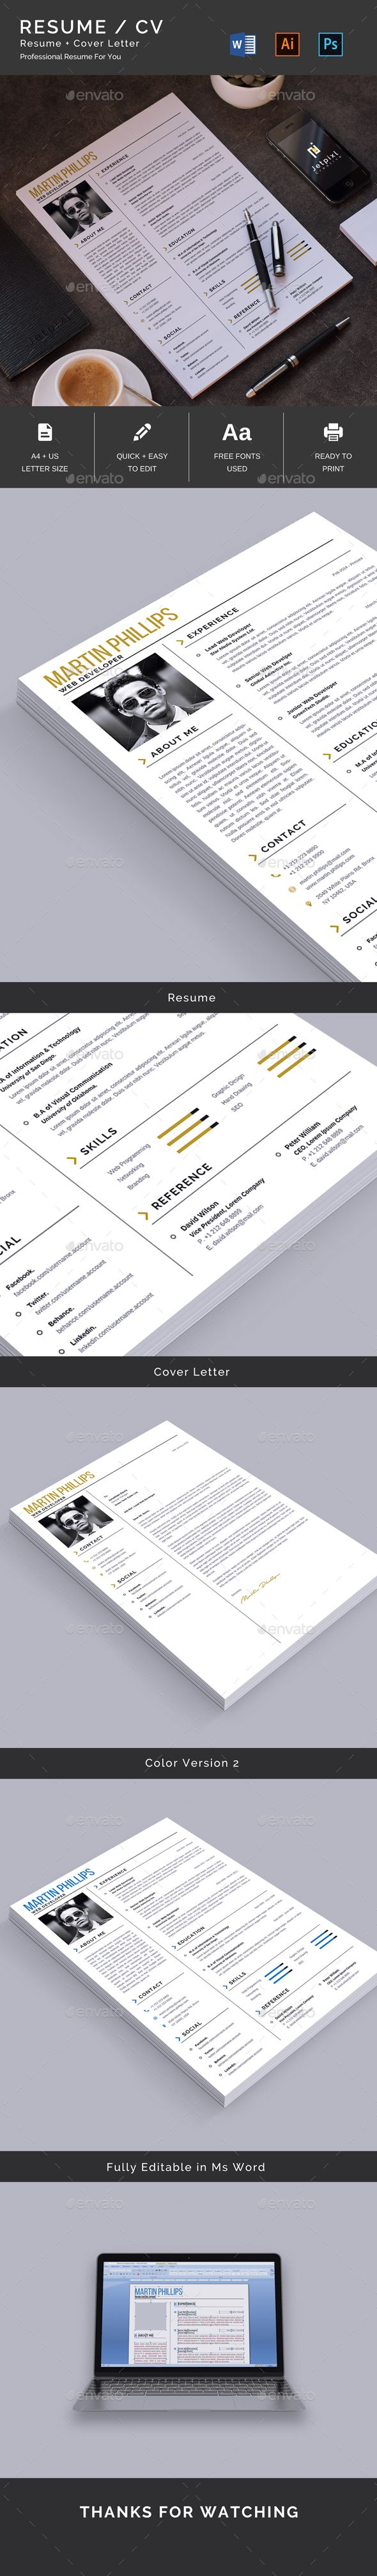 manual tester resume%0A Resume   Resumes  Stationery